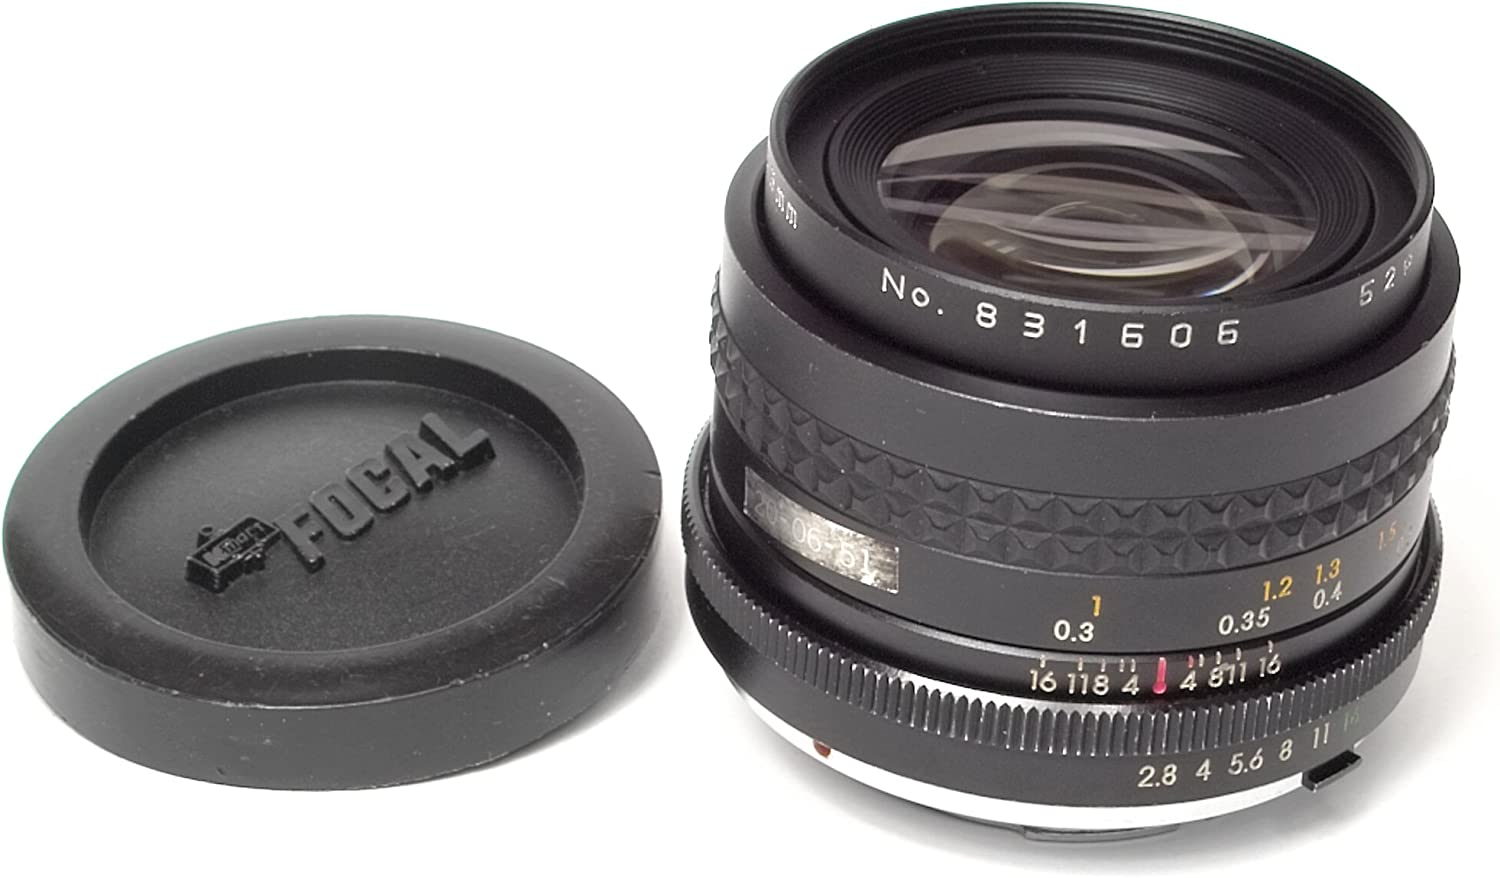 Focal MC Auto 1:2.8 55mm F=28mm Lens 536891 w// Toyo Optics Skylight 52mm